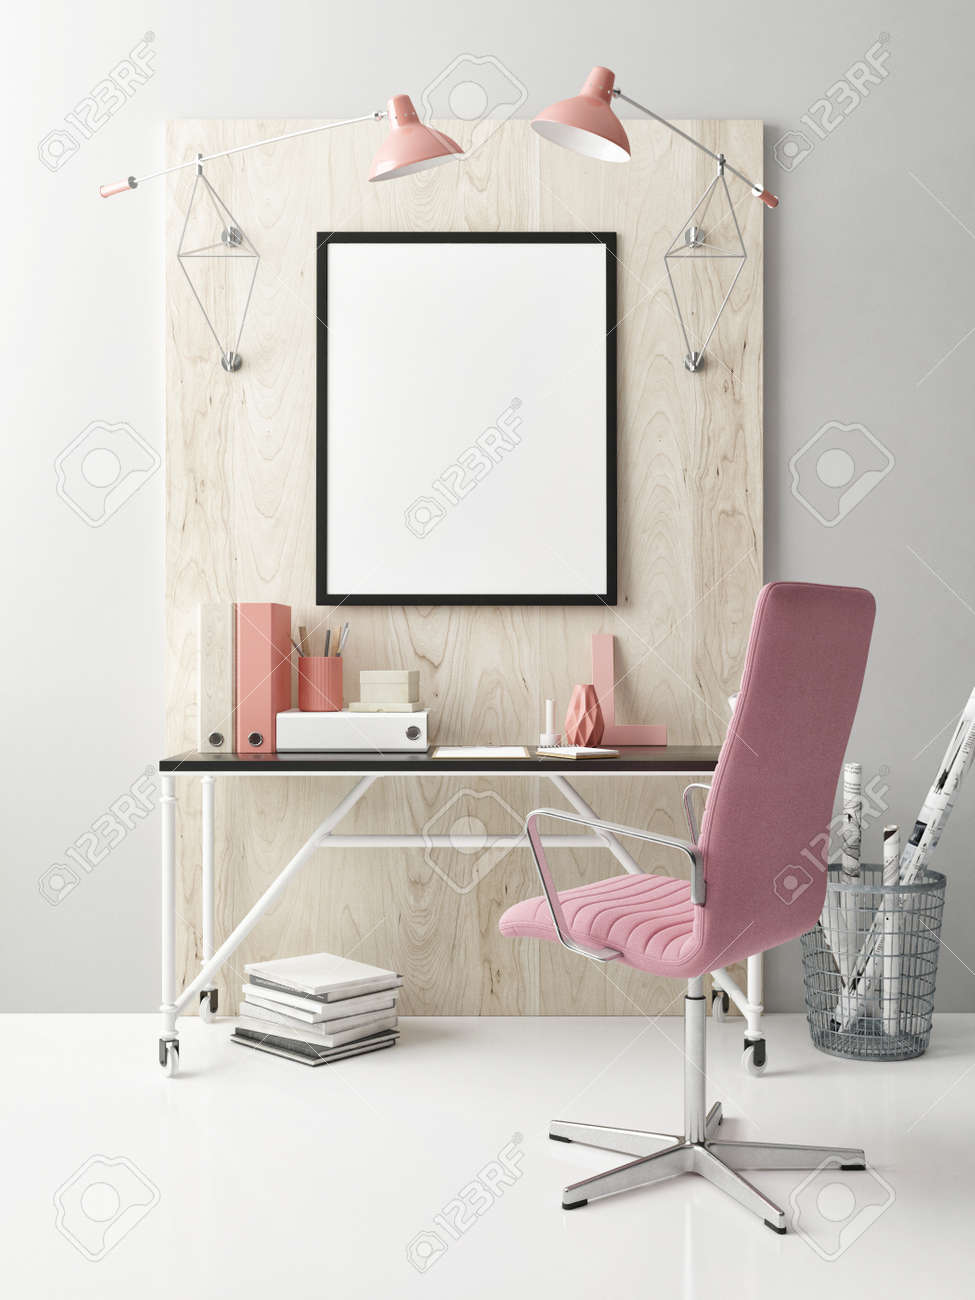 Mock Up workspace, a poster on the table, 3d illustration - 159145722